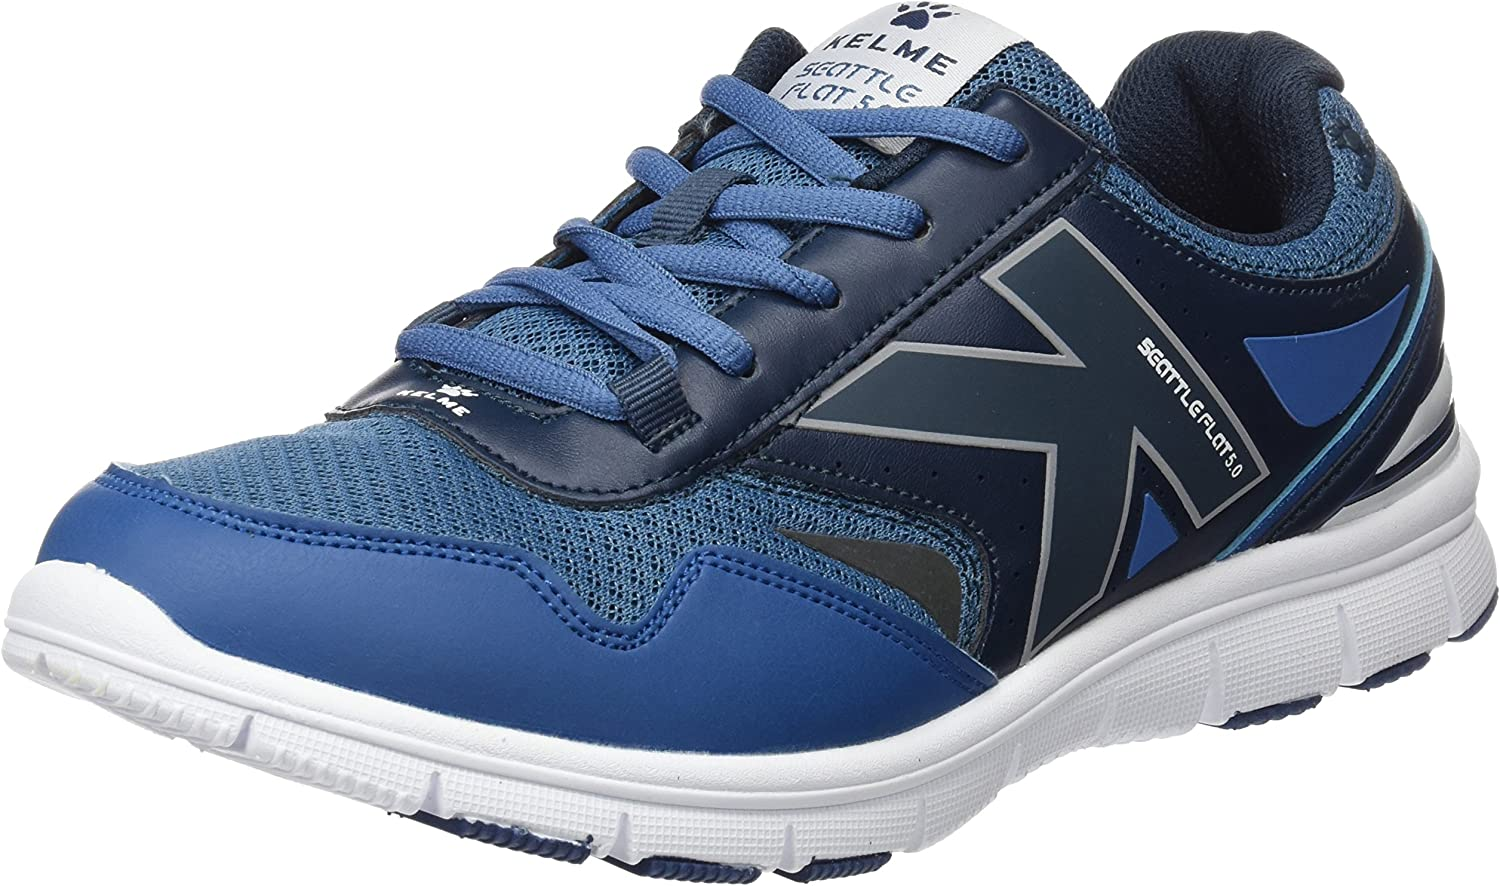 Kelme Men's Seattle Flat 5.0 Low-Top Sneakers